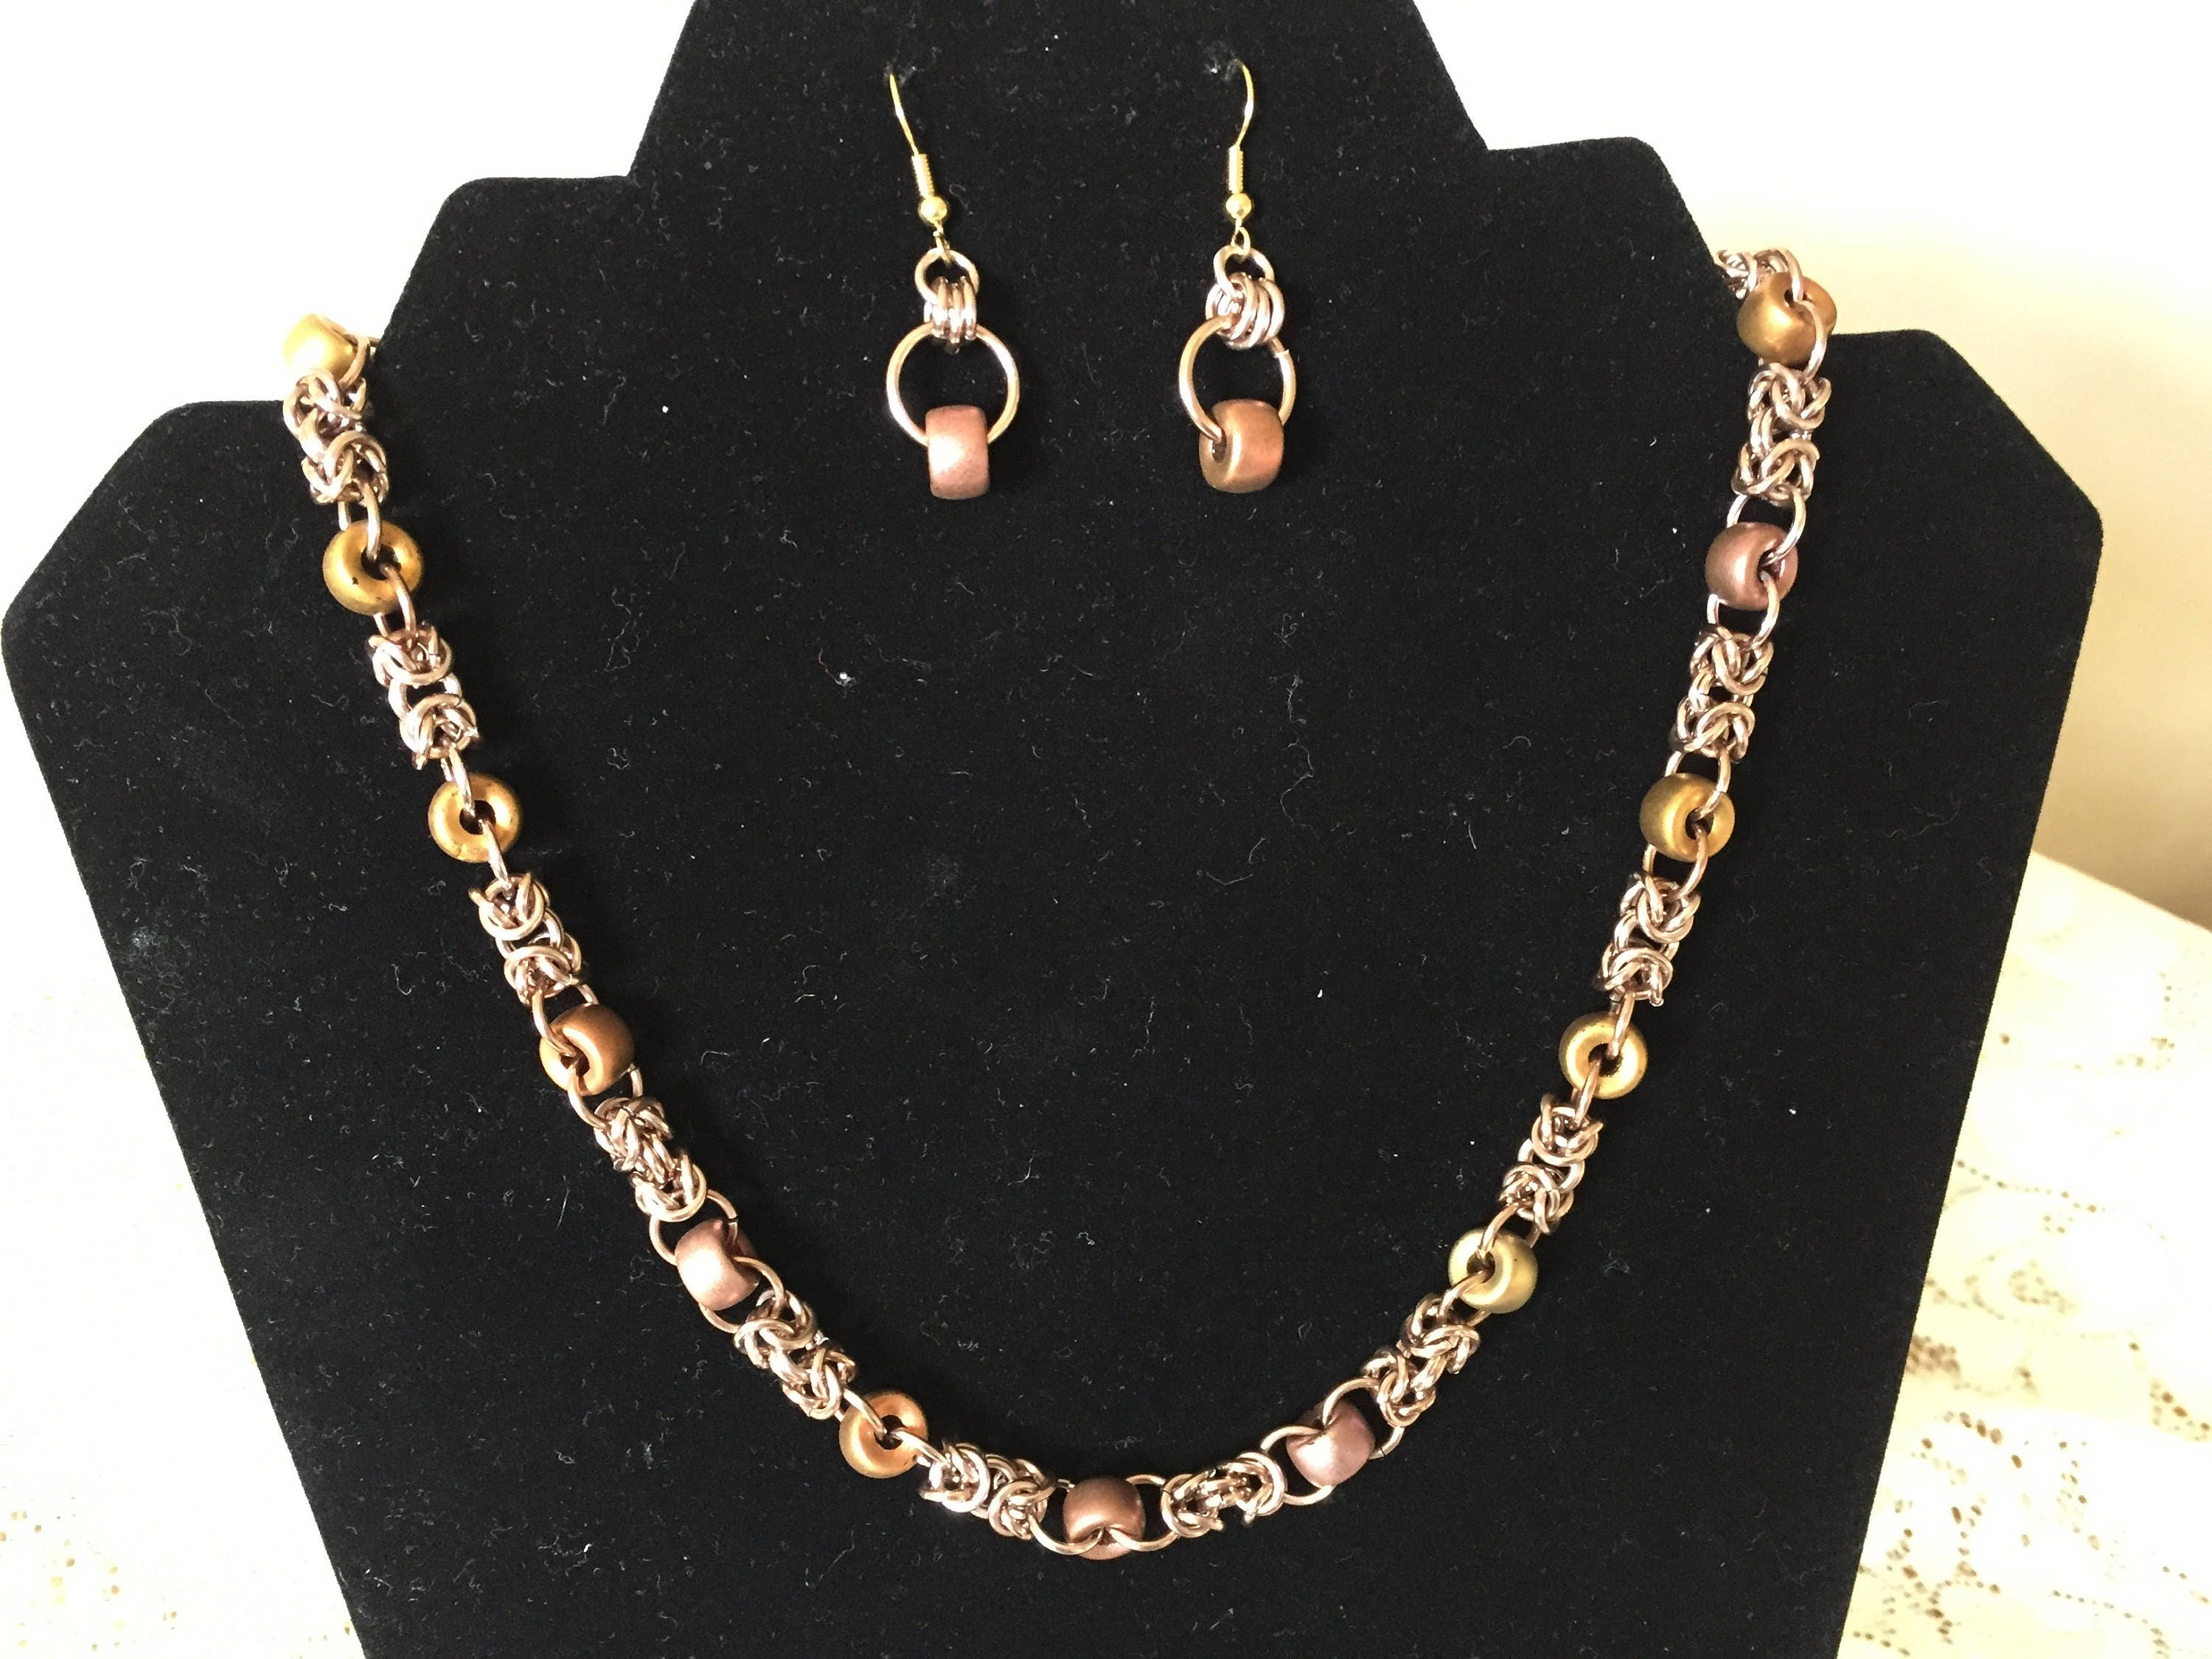 Filigree Byzantine chain mail and glass bead necklace your choice of colour bracelet and earrings also available